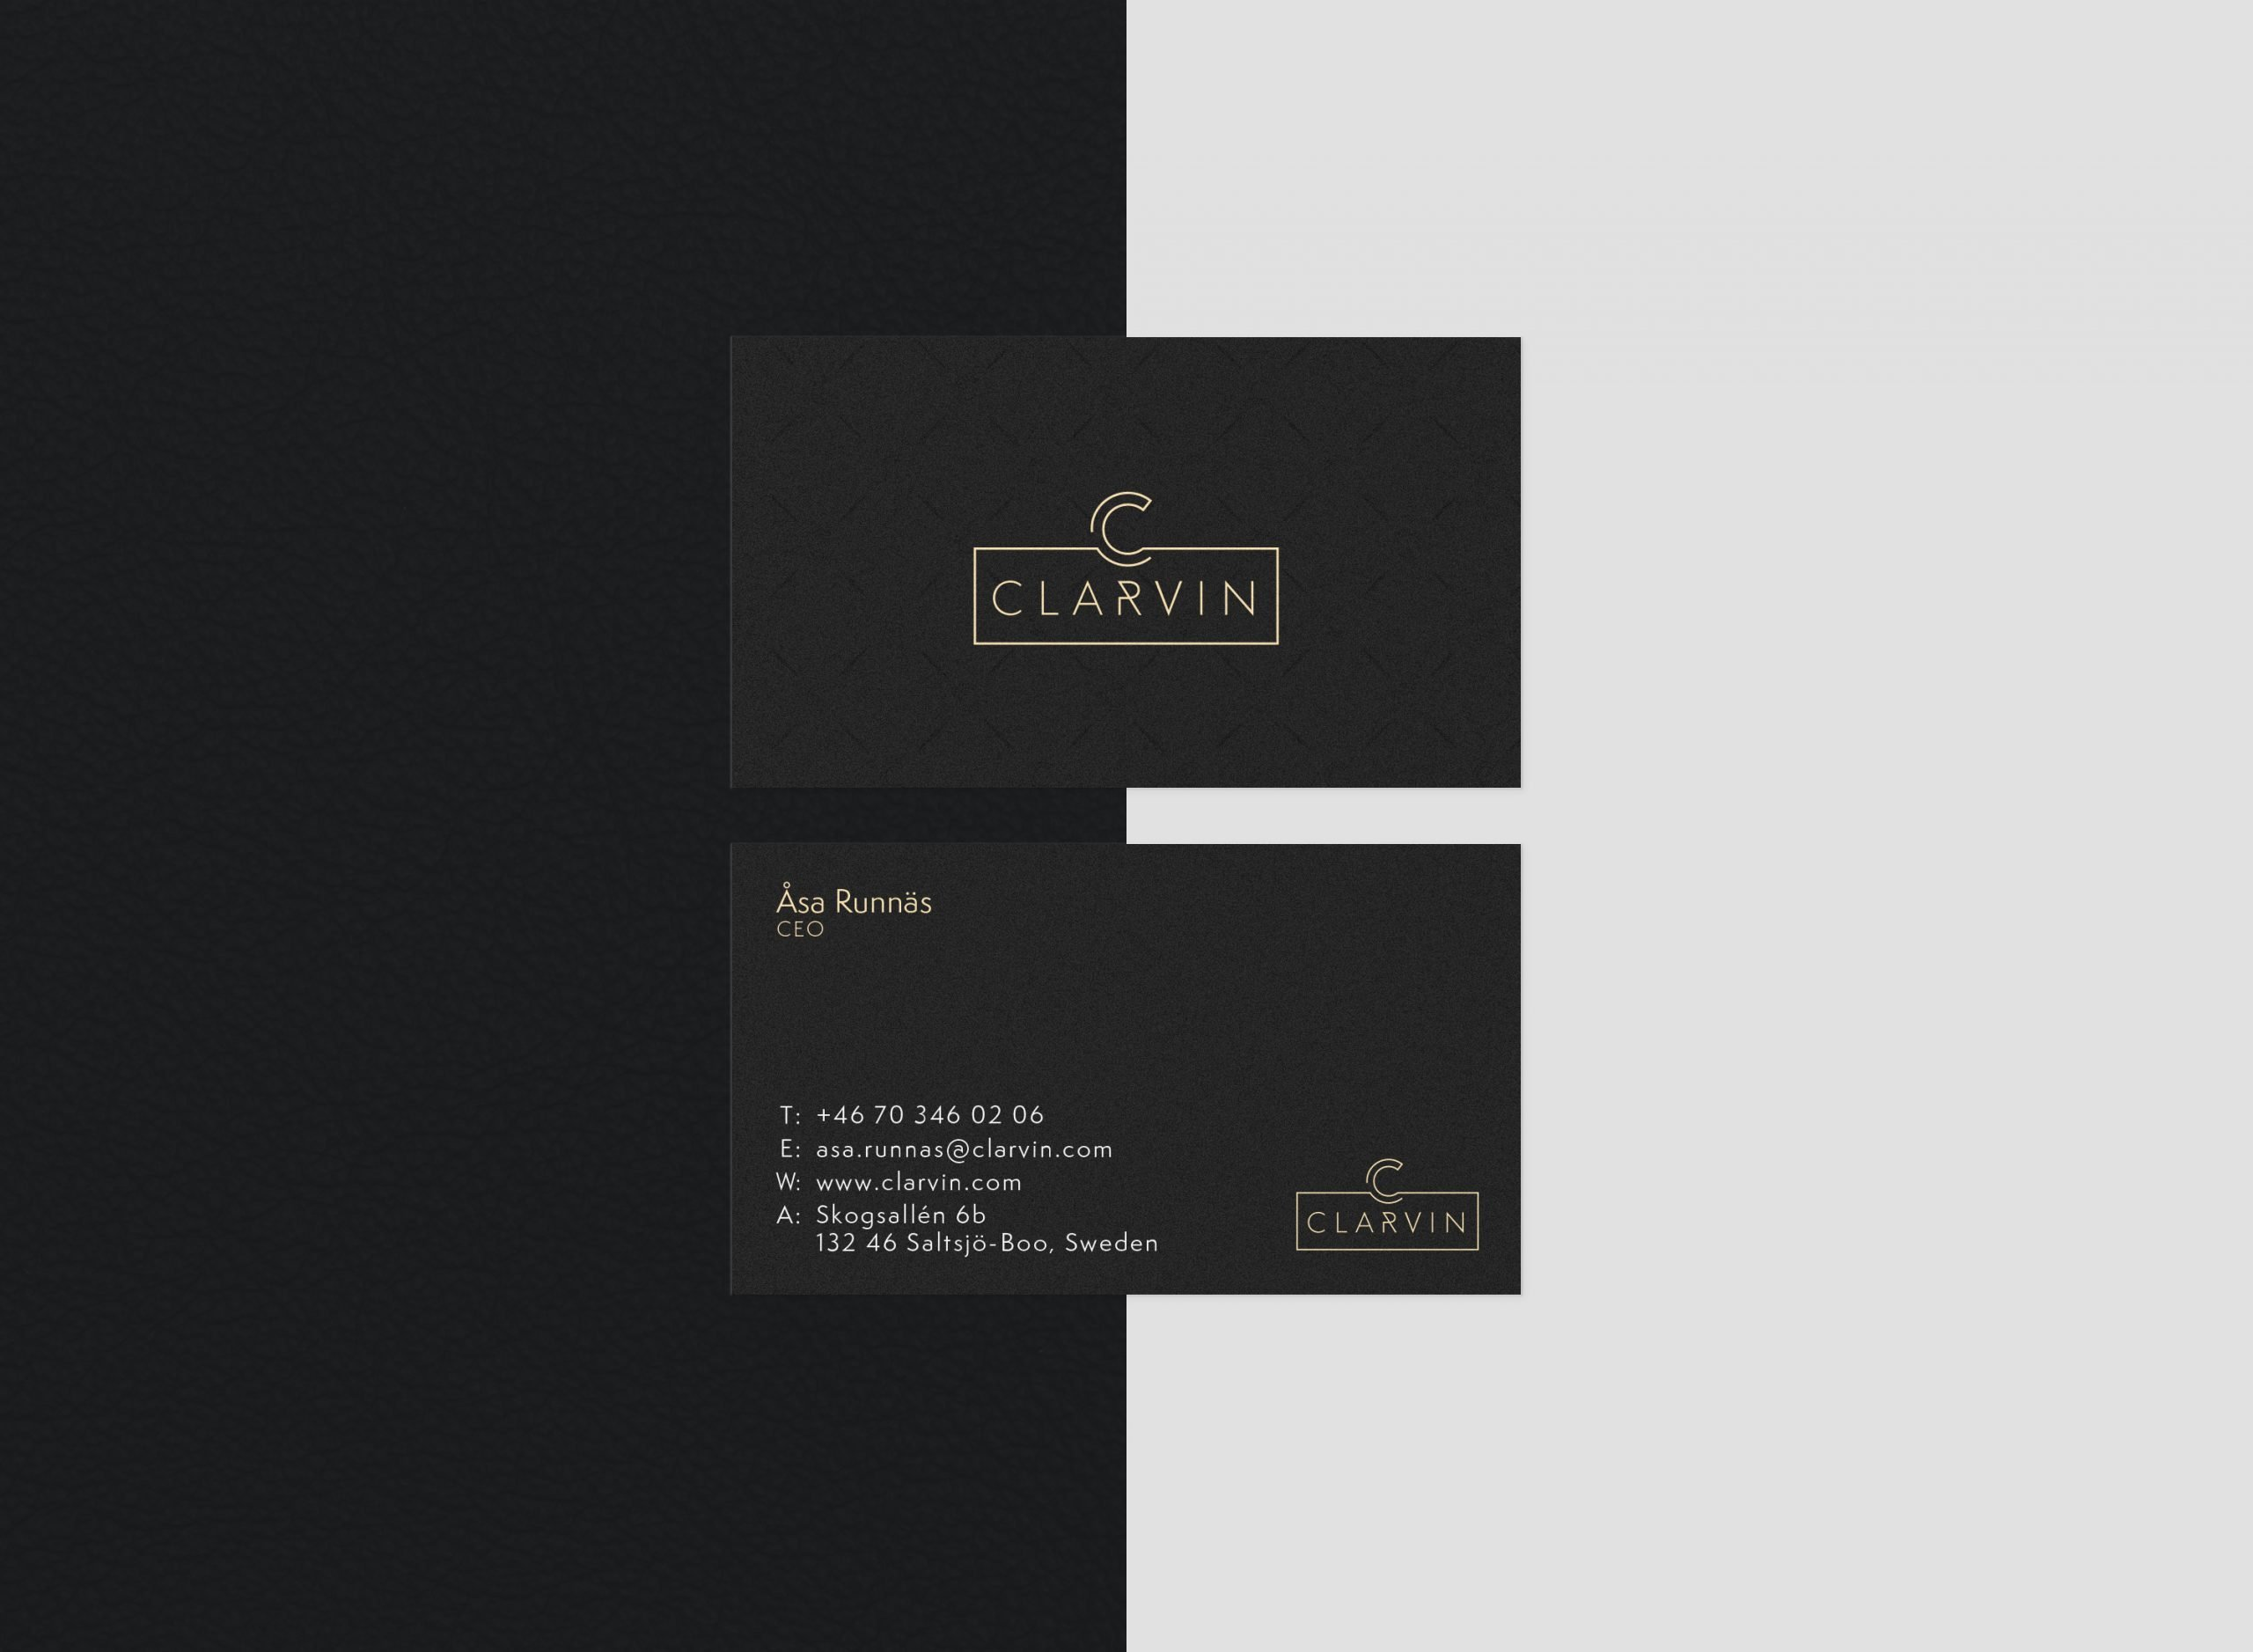 CLARVIN Business Card - Mj Design Center